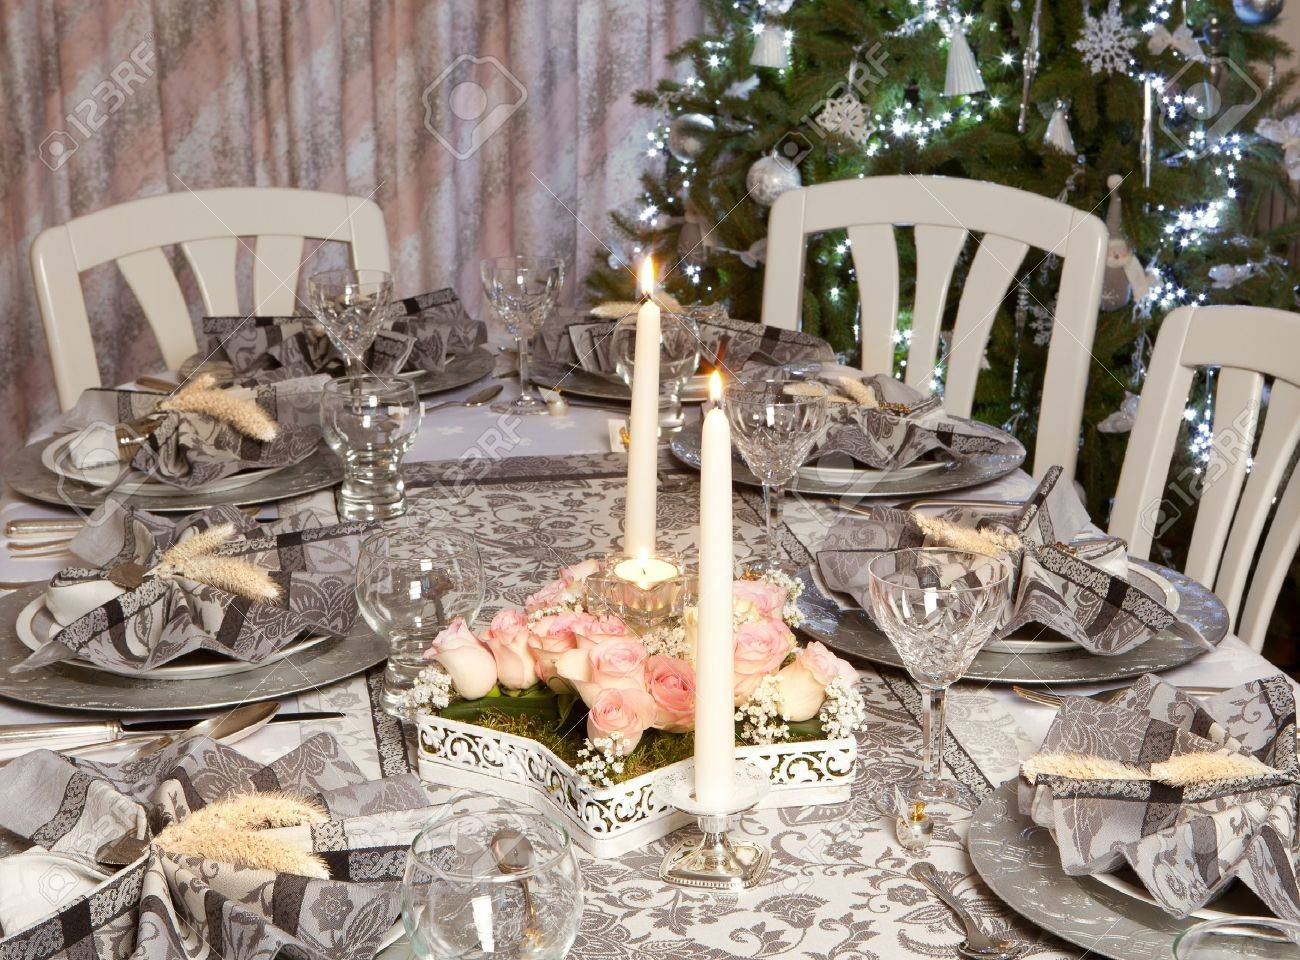 Fancy Christmas Dinner Table With Decorated Napkins Stock Photo Picture And Royalty Free Image Image 16391604